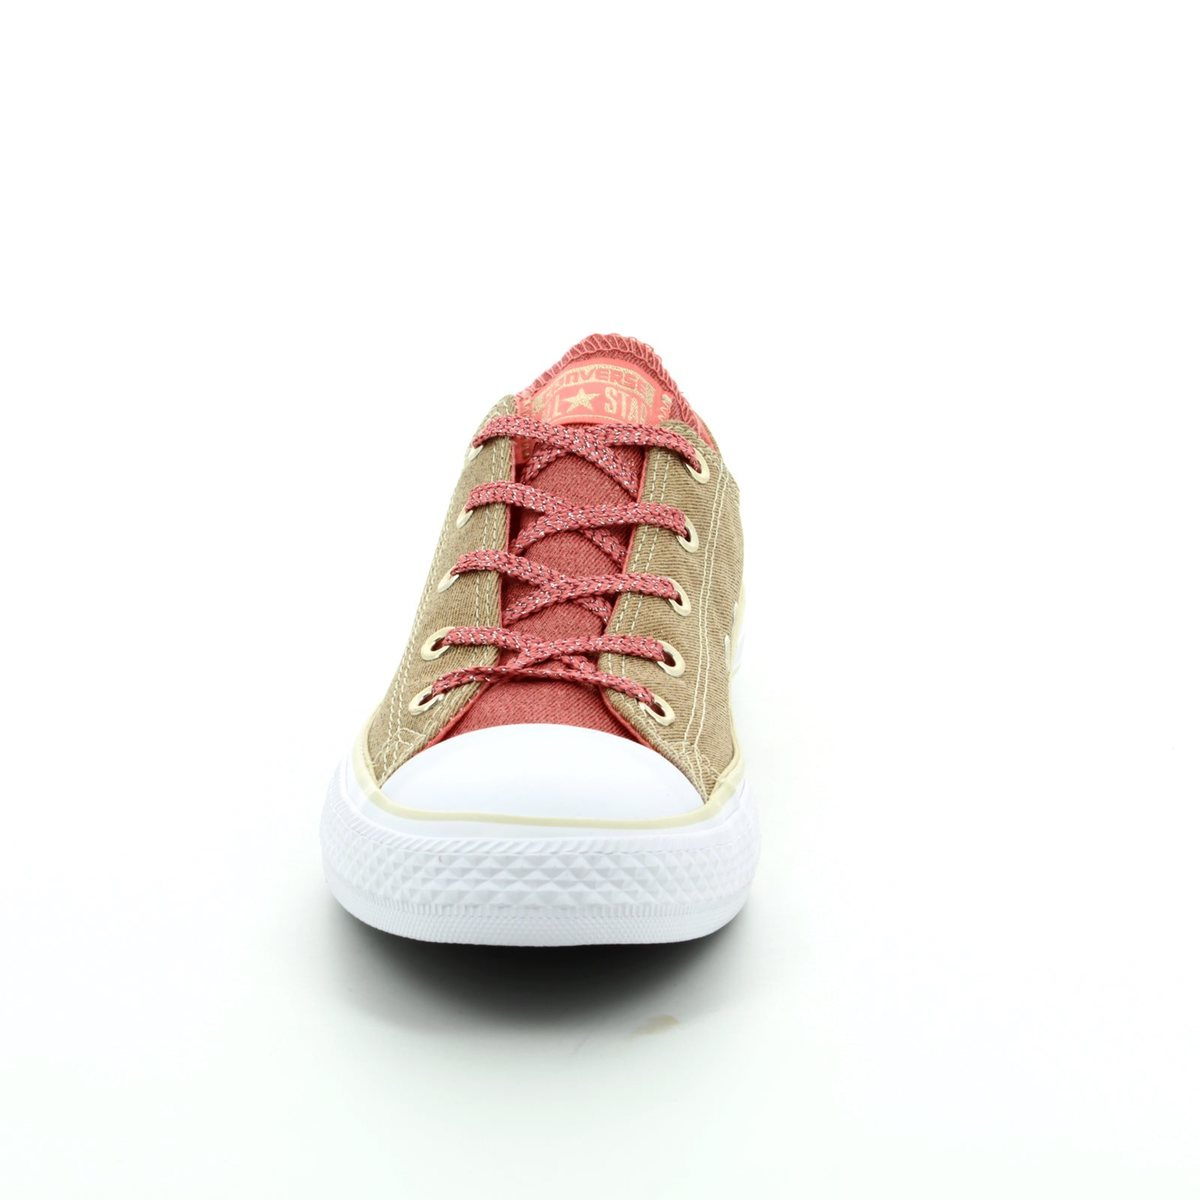 66beb48c2e6f Converse Trainers - Gold - 658111C Chuck Taylor ALL STAR OX Youth